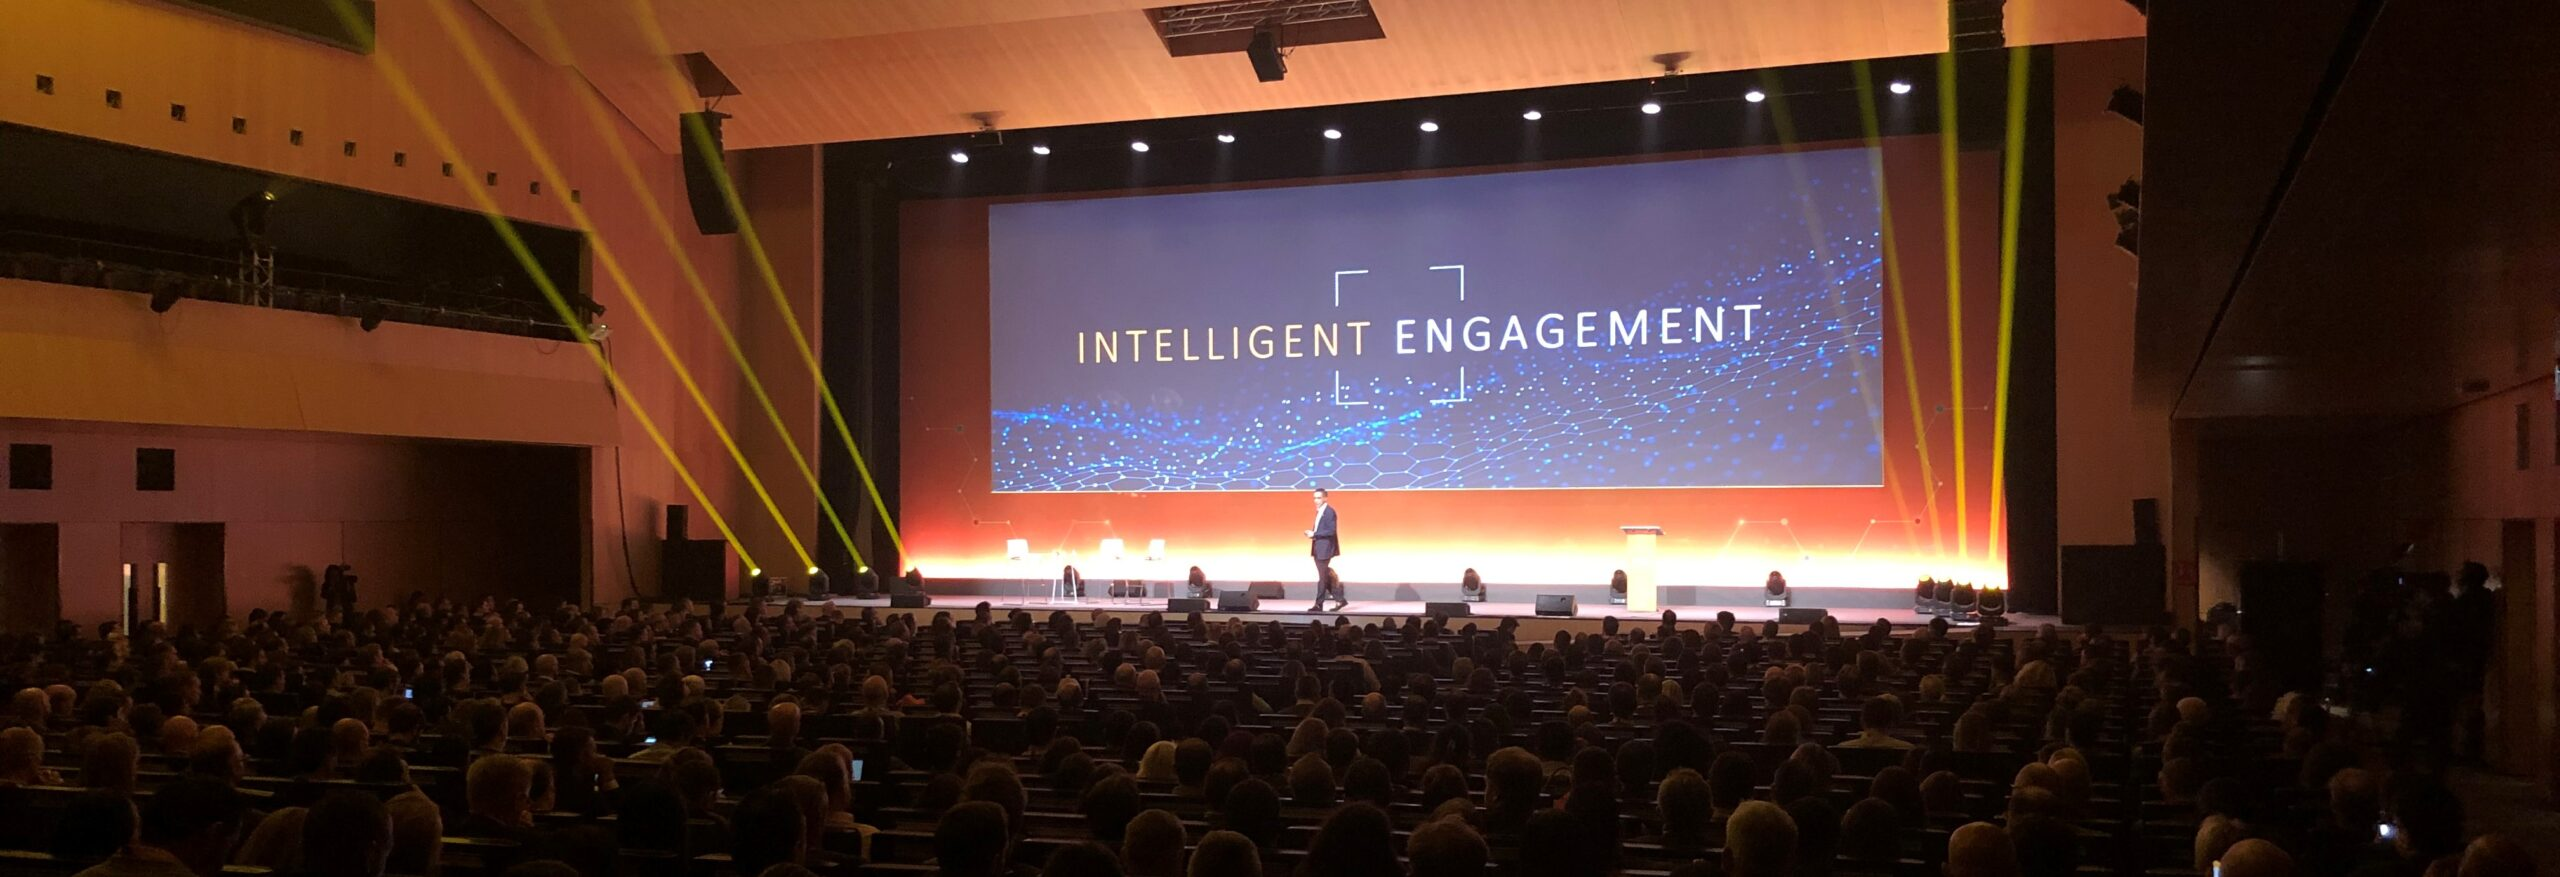 Image of a stage at an event with the words intelligent enablement on the screen